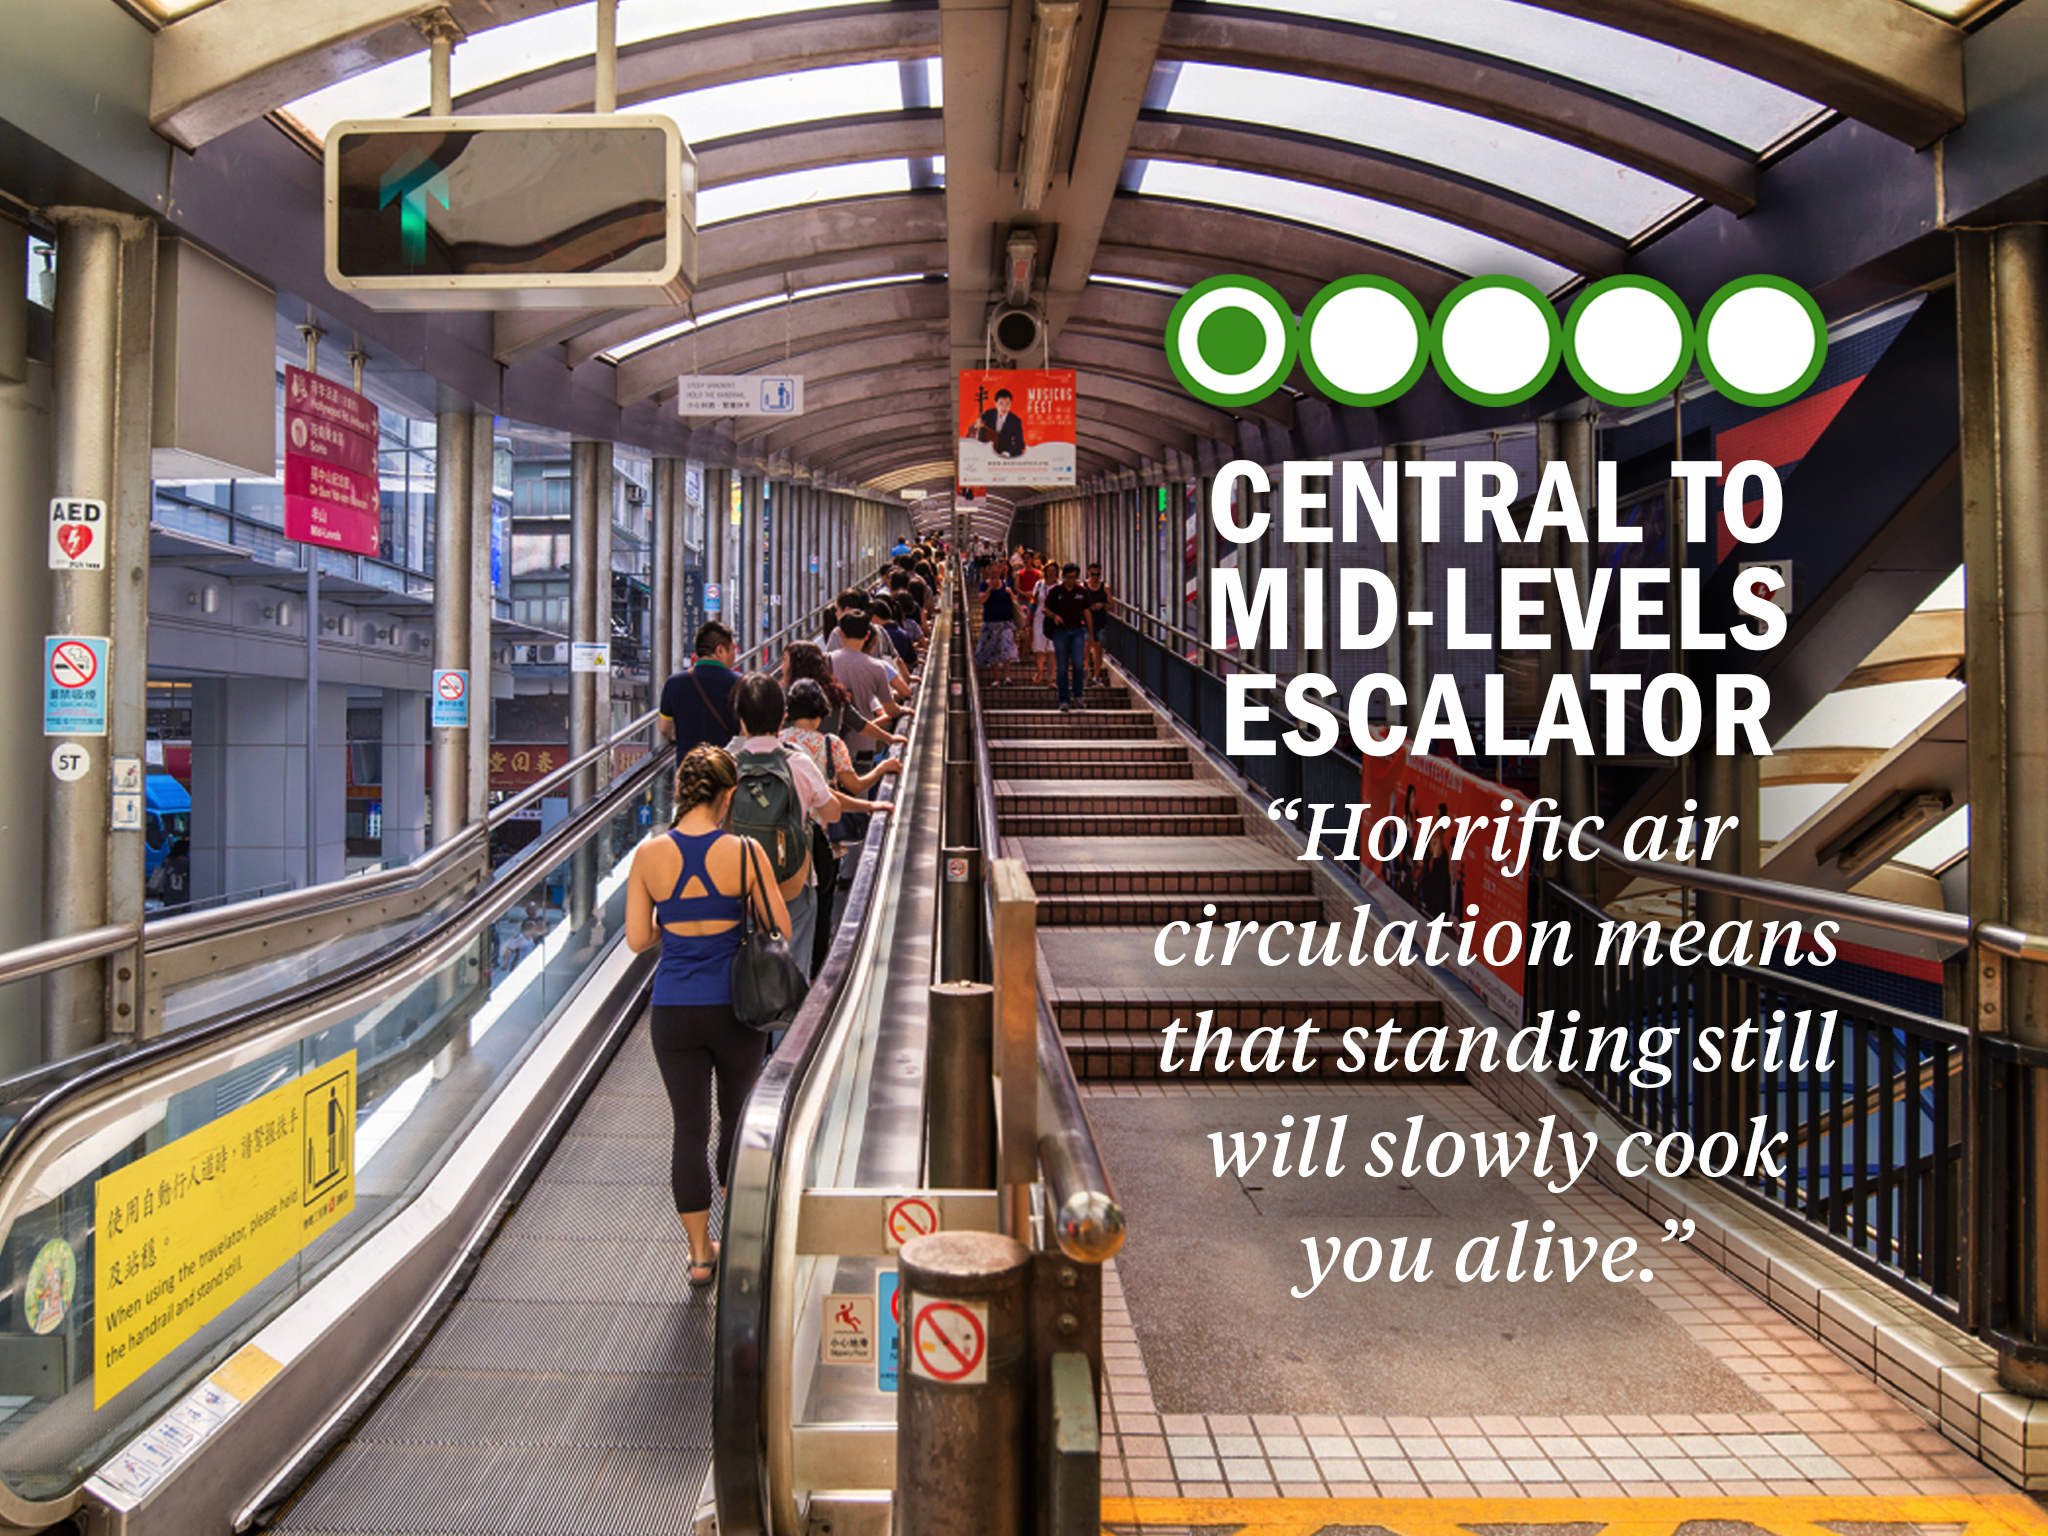 Mid-Levels Escalator